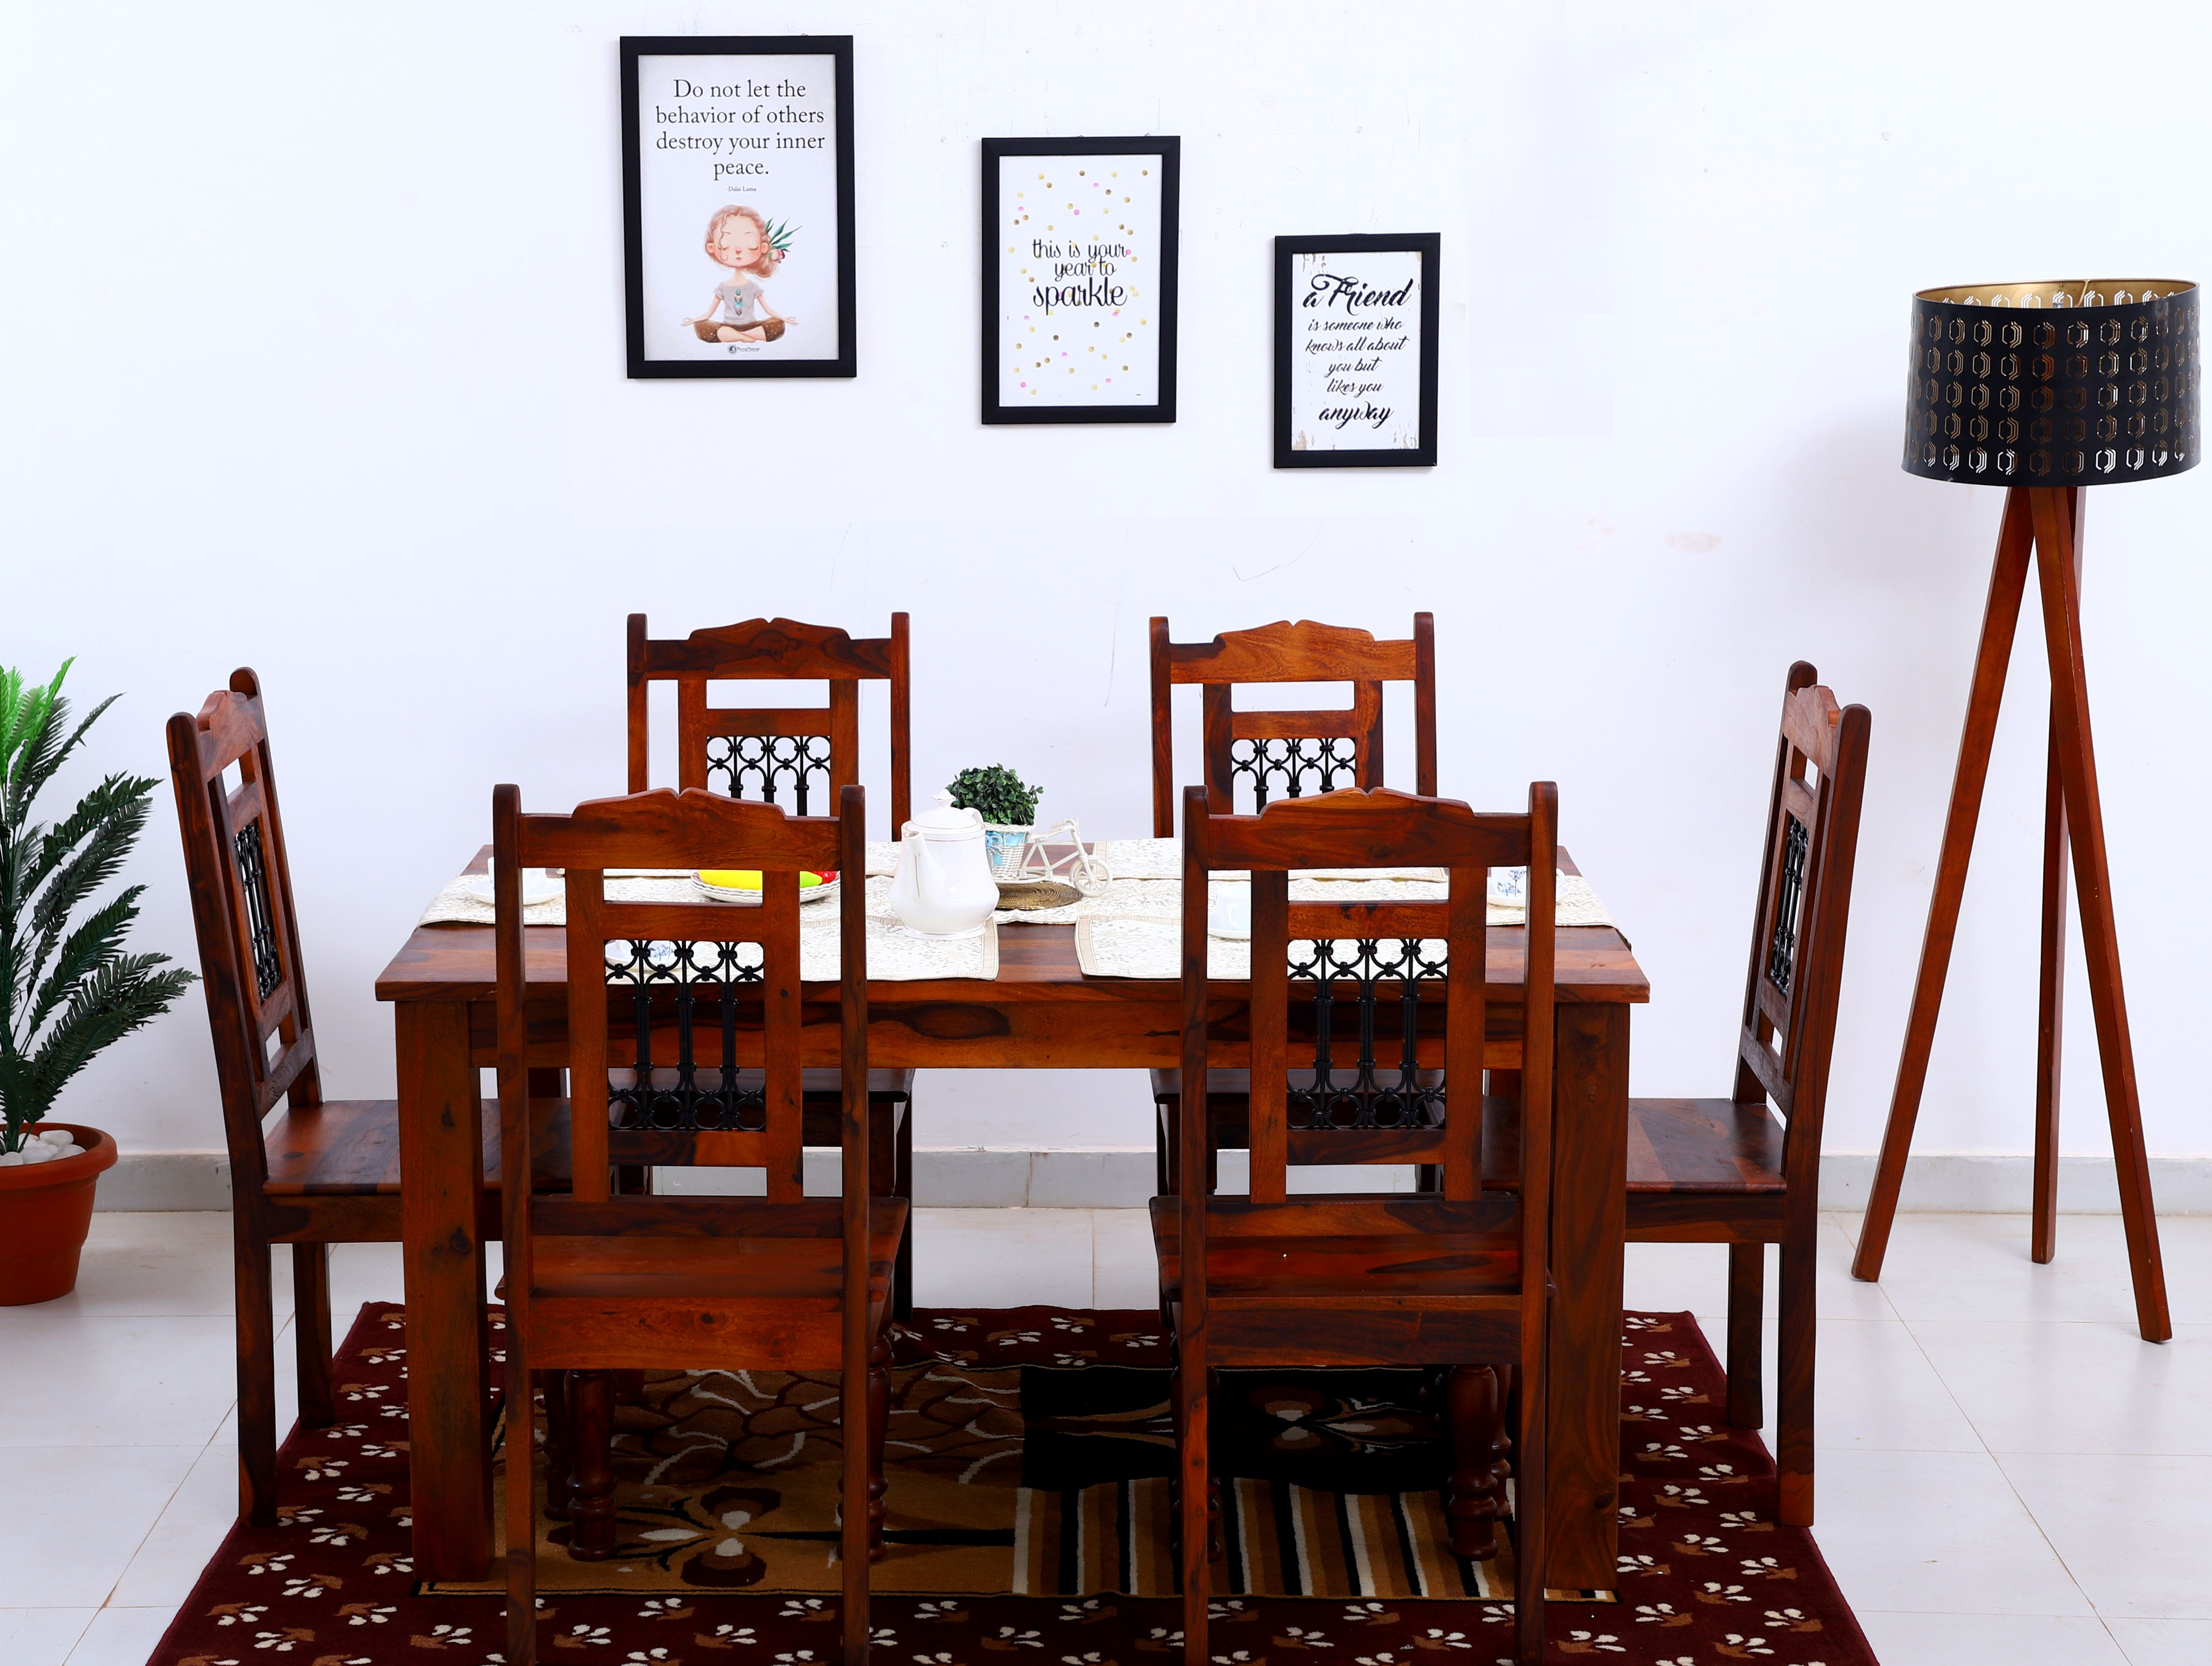 Full Of Contemporary Style This Dining Set Is Comfortable With Supporting Armrests As Well As Spacious Too In 2020 Furniture Sheesham Wood Furniture Wood Dining Table